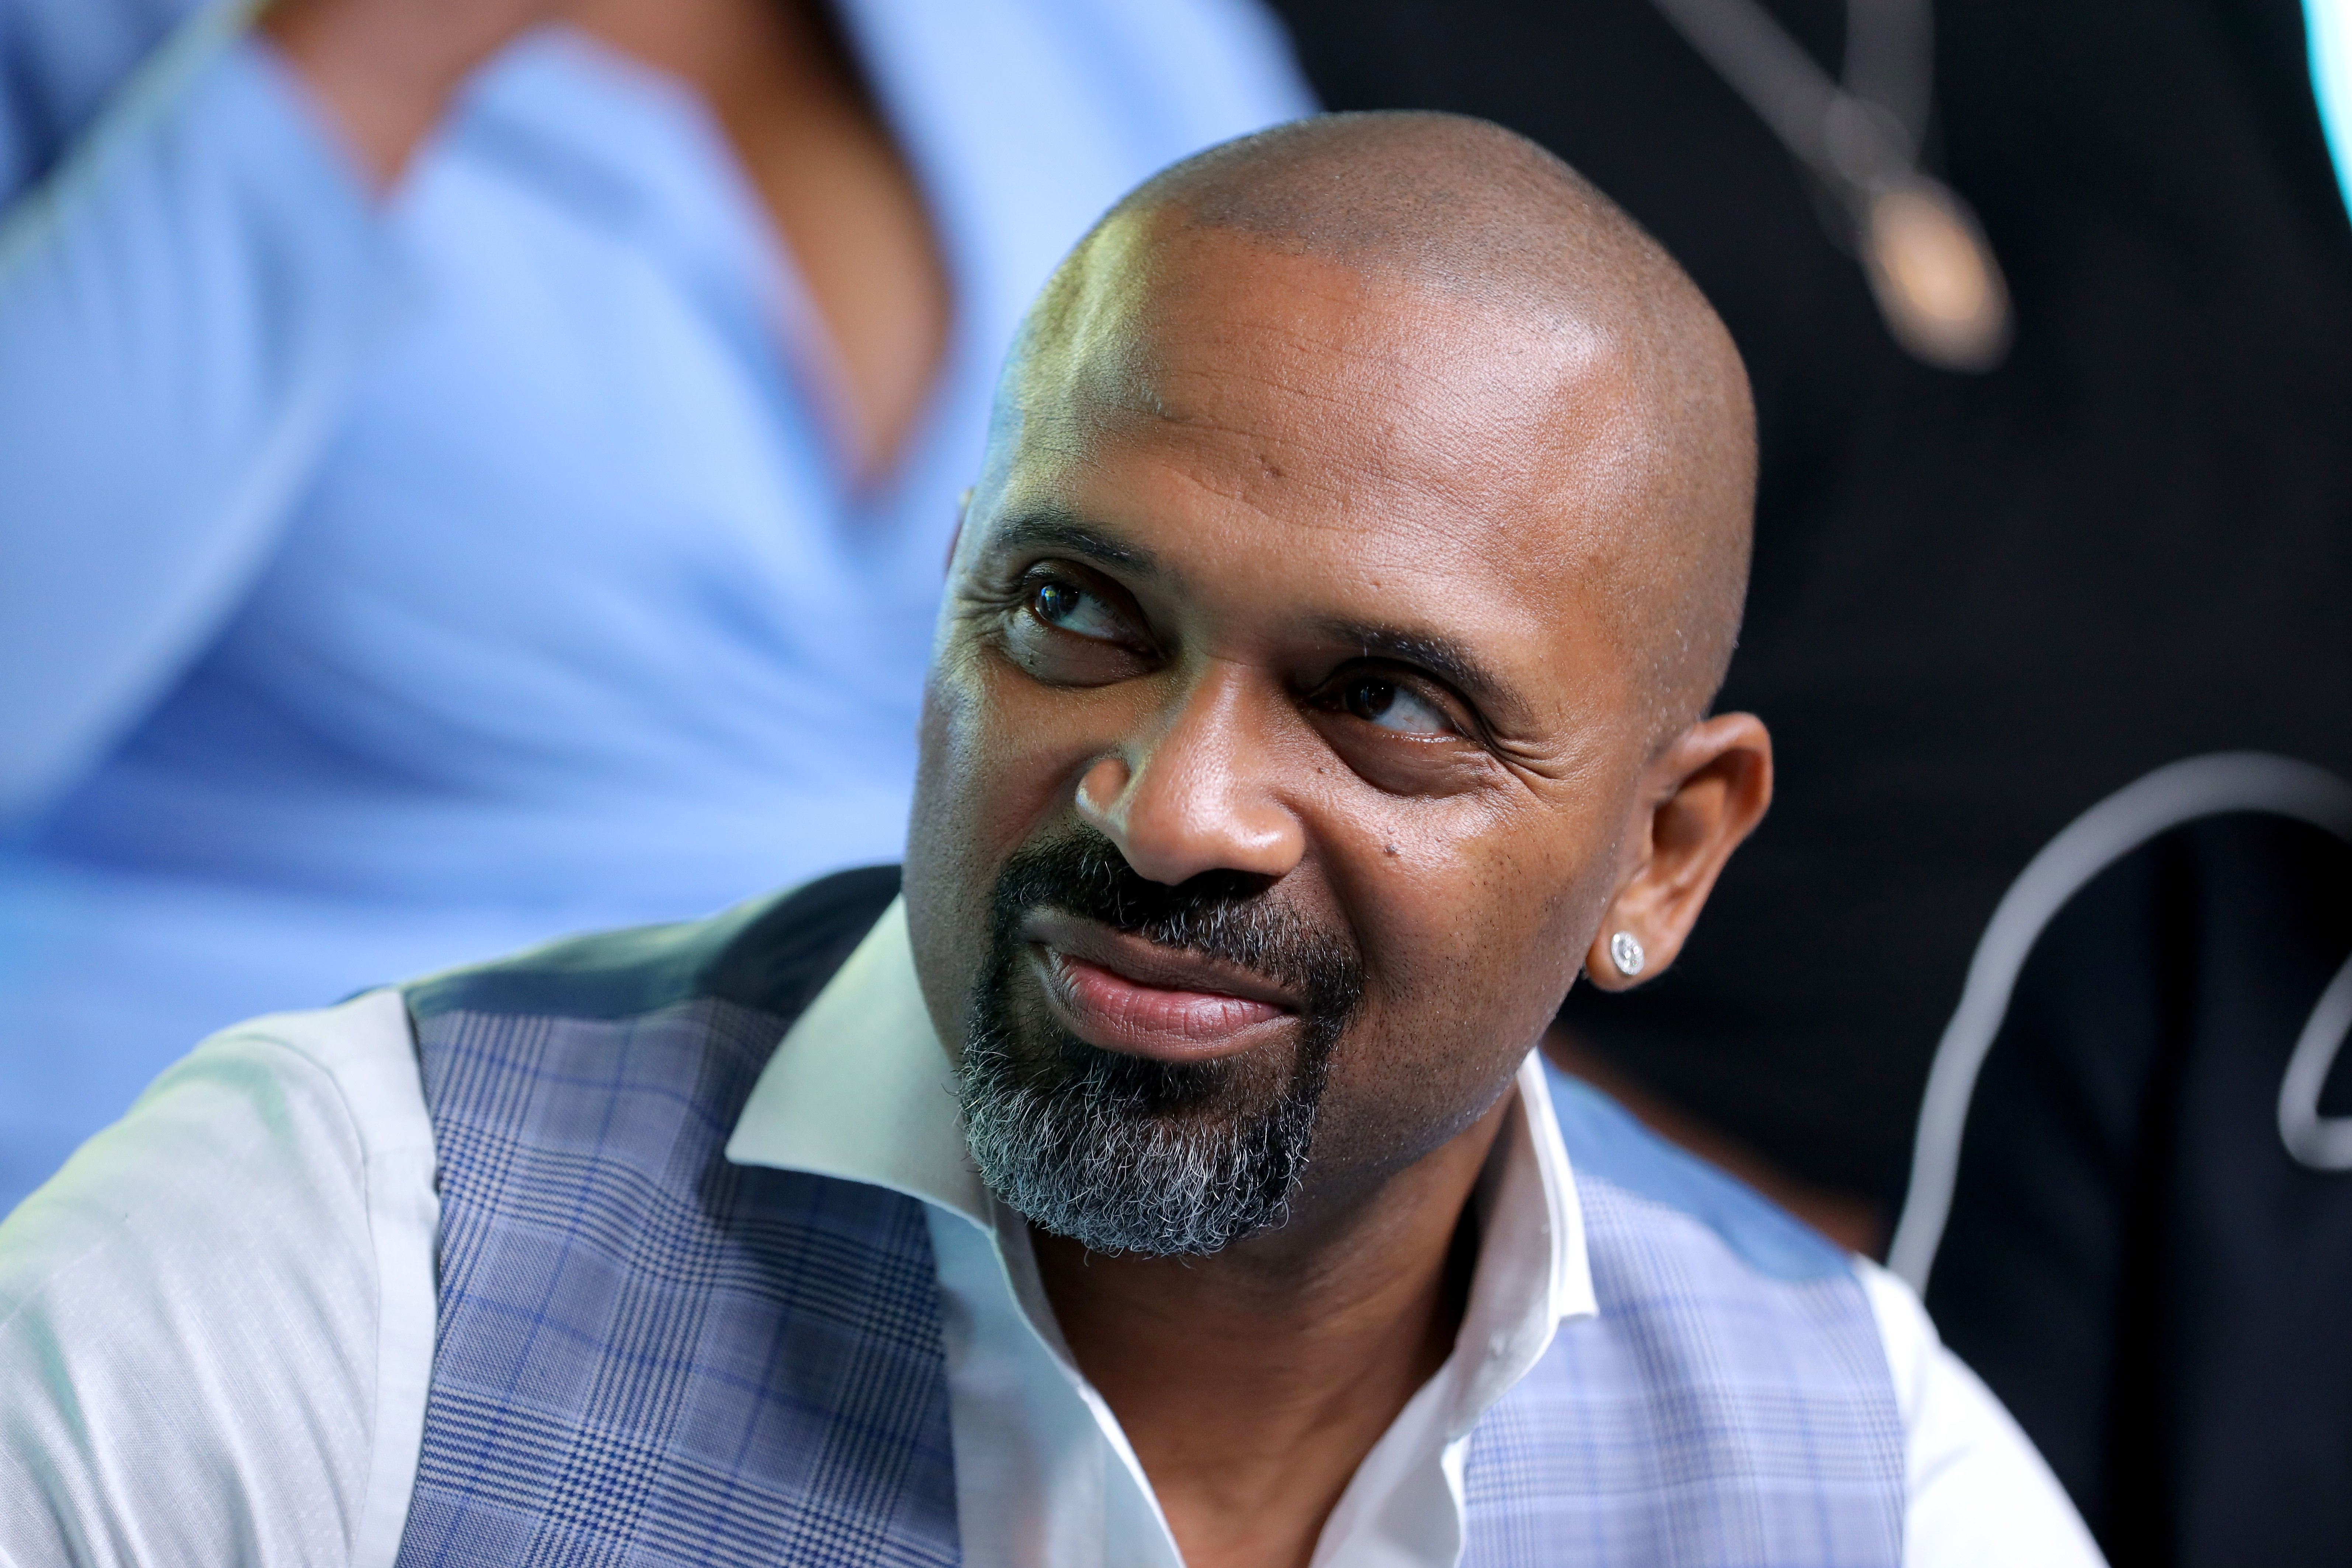 Mike Epps pictured at The IMDb Studio Presented By Intuit QuickBooks at Toronto 2019 on September 07, 2019 in Toronto, Canada. | Source: Getty Images